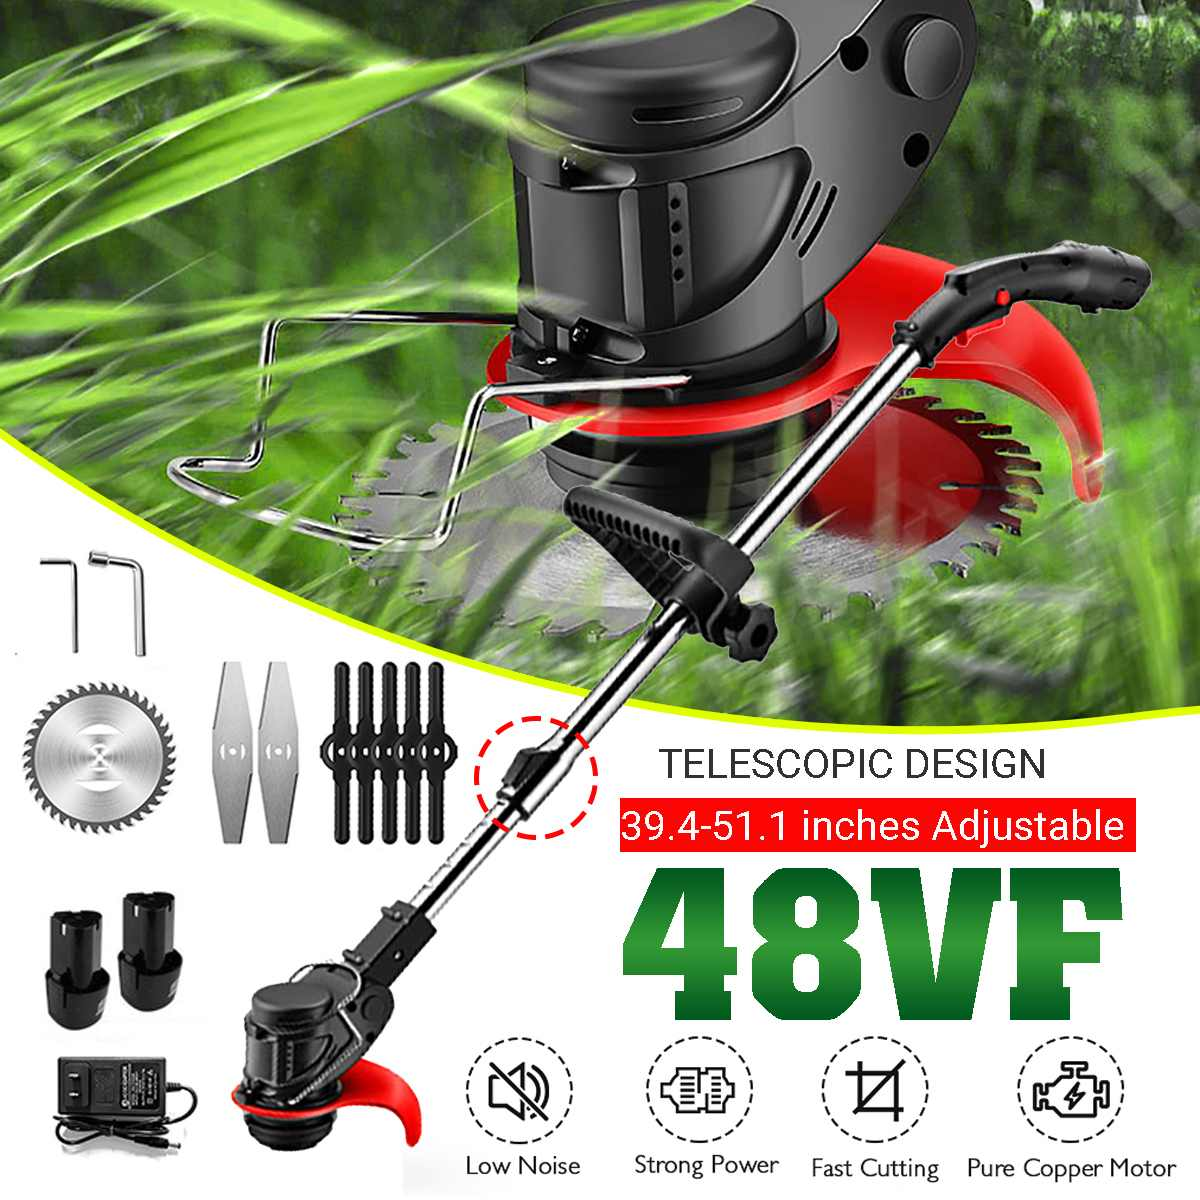 48VF Portable Electric Grass Trimmer Handheld Lawn Mower Agricultural Household Cordless Weeder Garden Pruning Tool